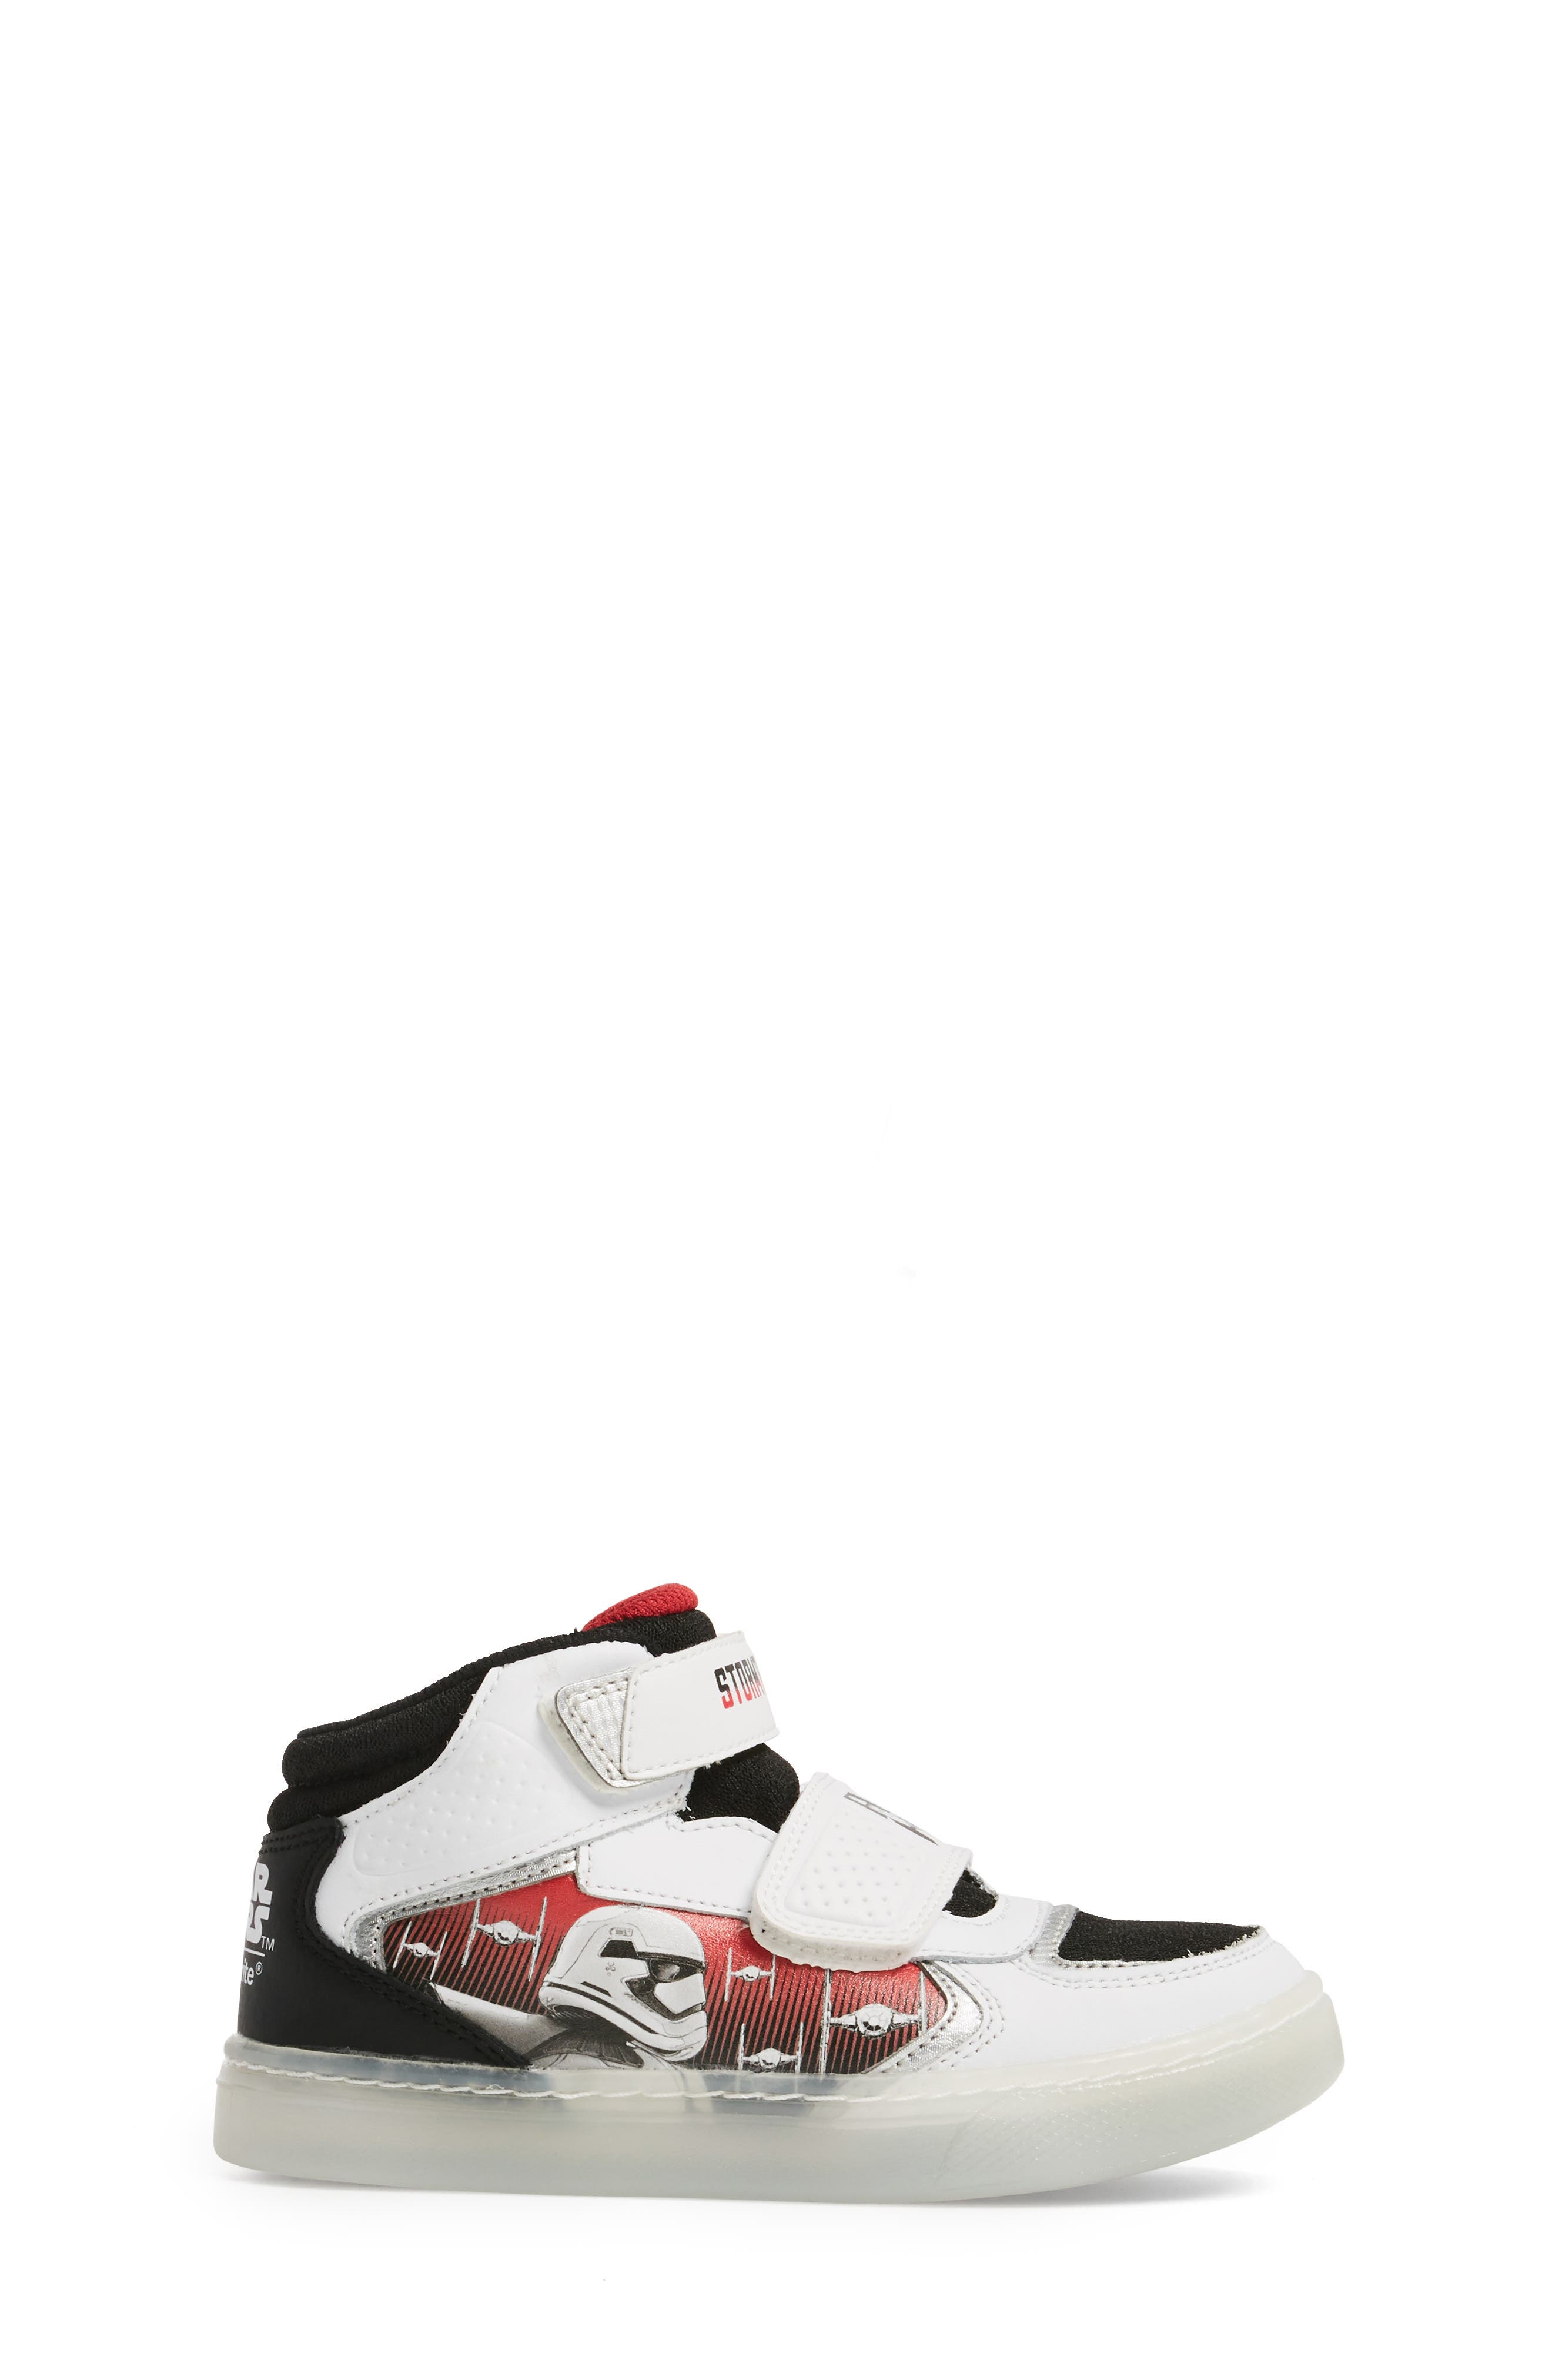 Star Wars<sup>®</sup> Stormtropper Galaxy Light-Up Sneaker,                             Alternate thumbnail 3, color,                             White/ Black